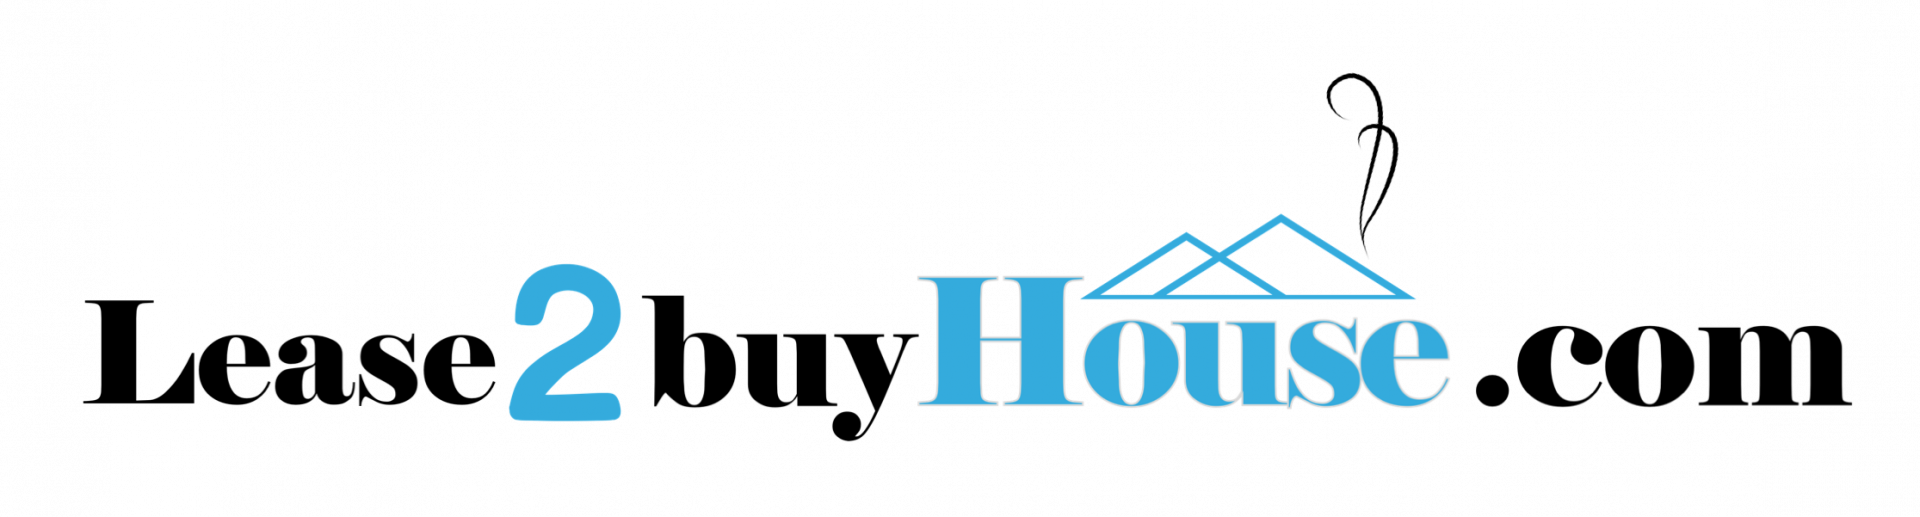 Rent to Own Homes in San Antonio - Lease 2 Buy House